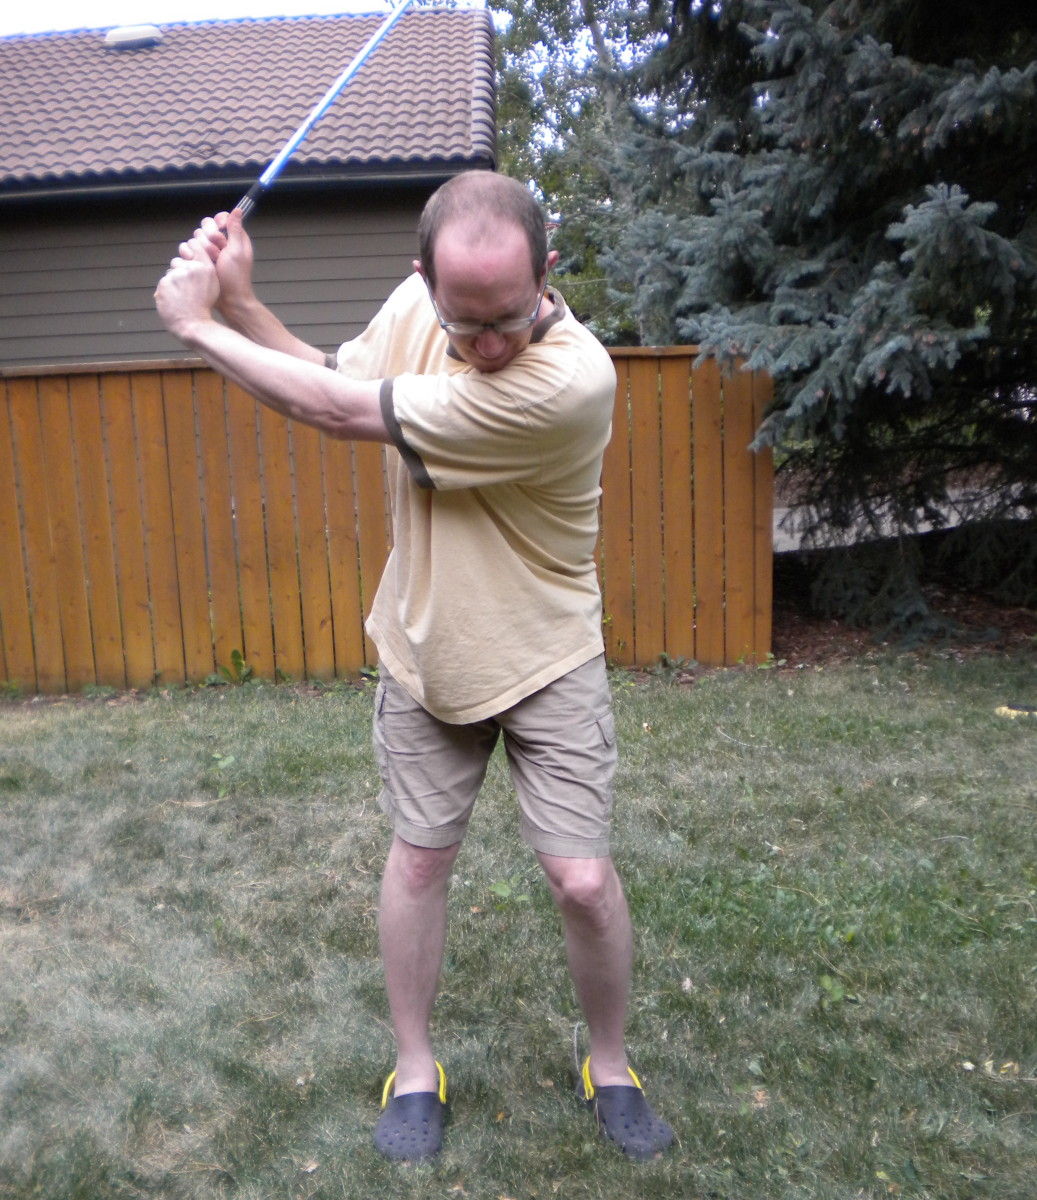 If most golfers only took their swing back this far, most would improve.